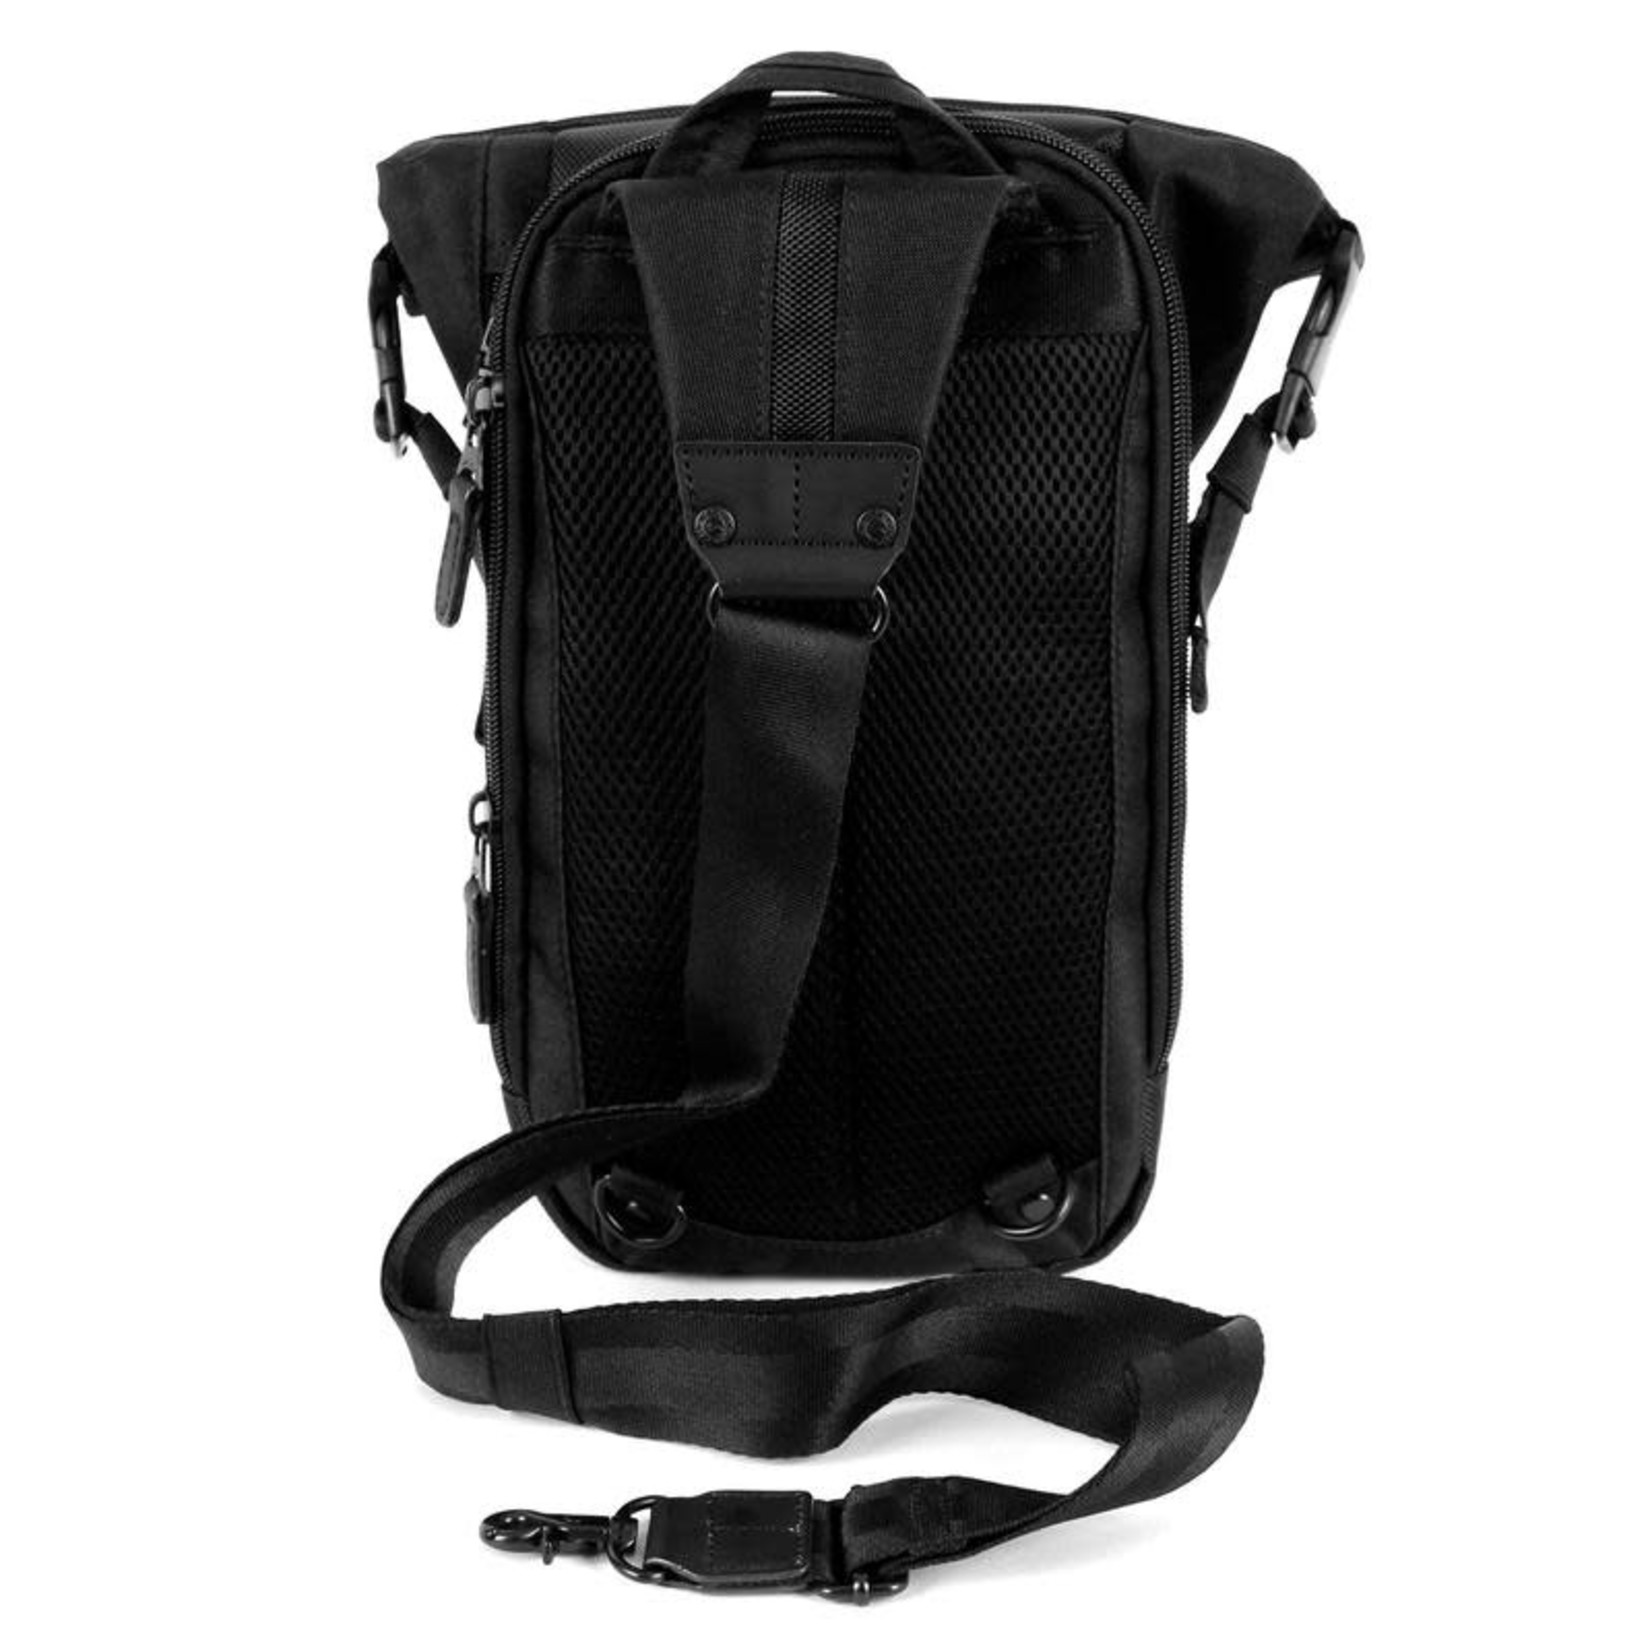 Molla Space Axis Sling Pack in Black